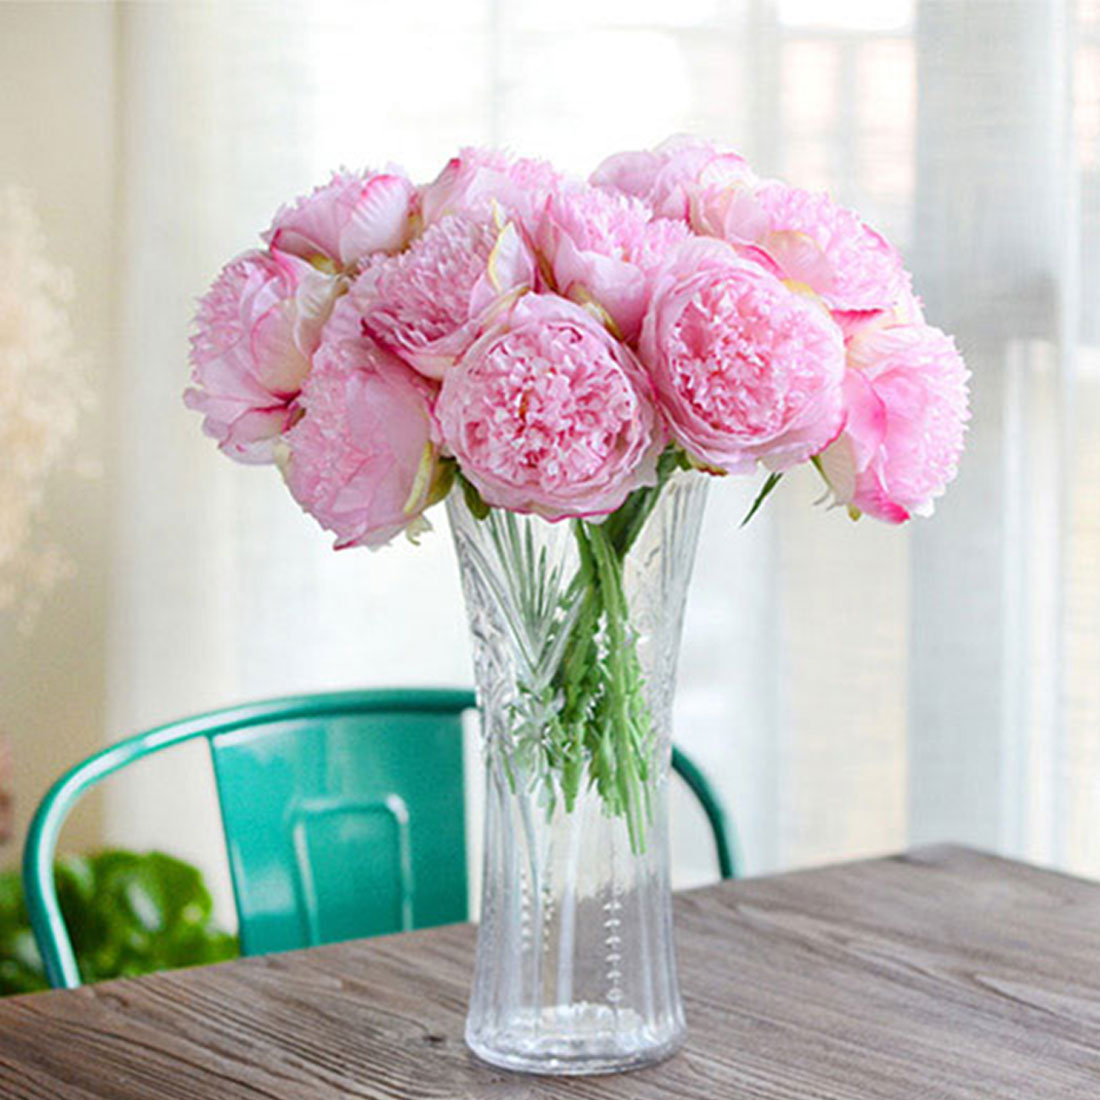 Cheap Silk Flower Bouquets For Weddings: Great Cheap Artificial Fake Peony Silk Flowers Bridal